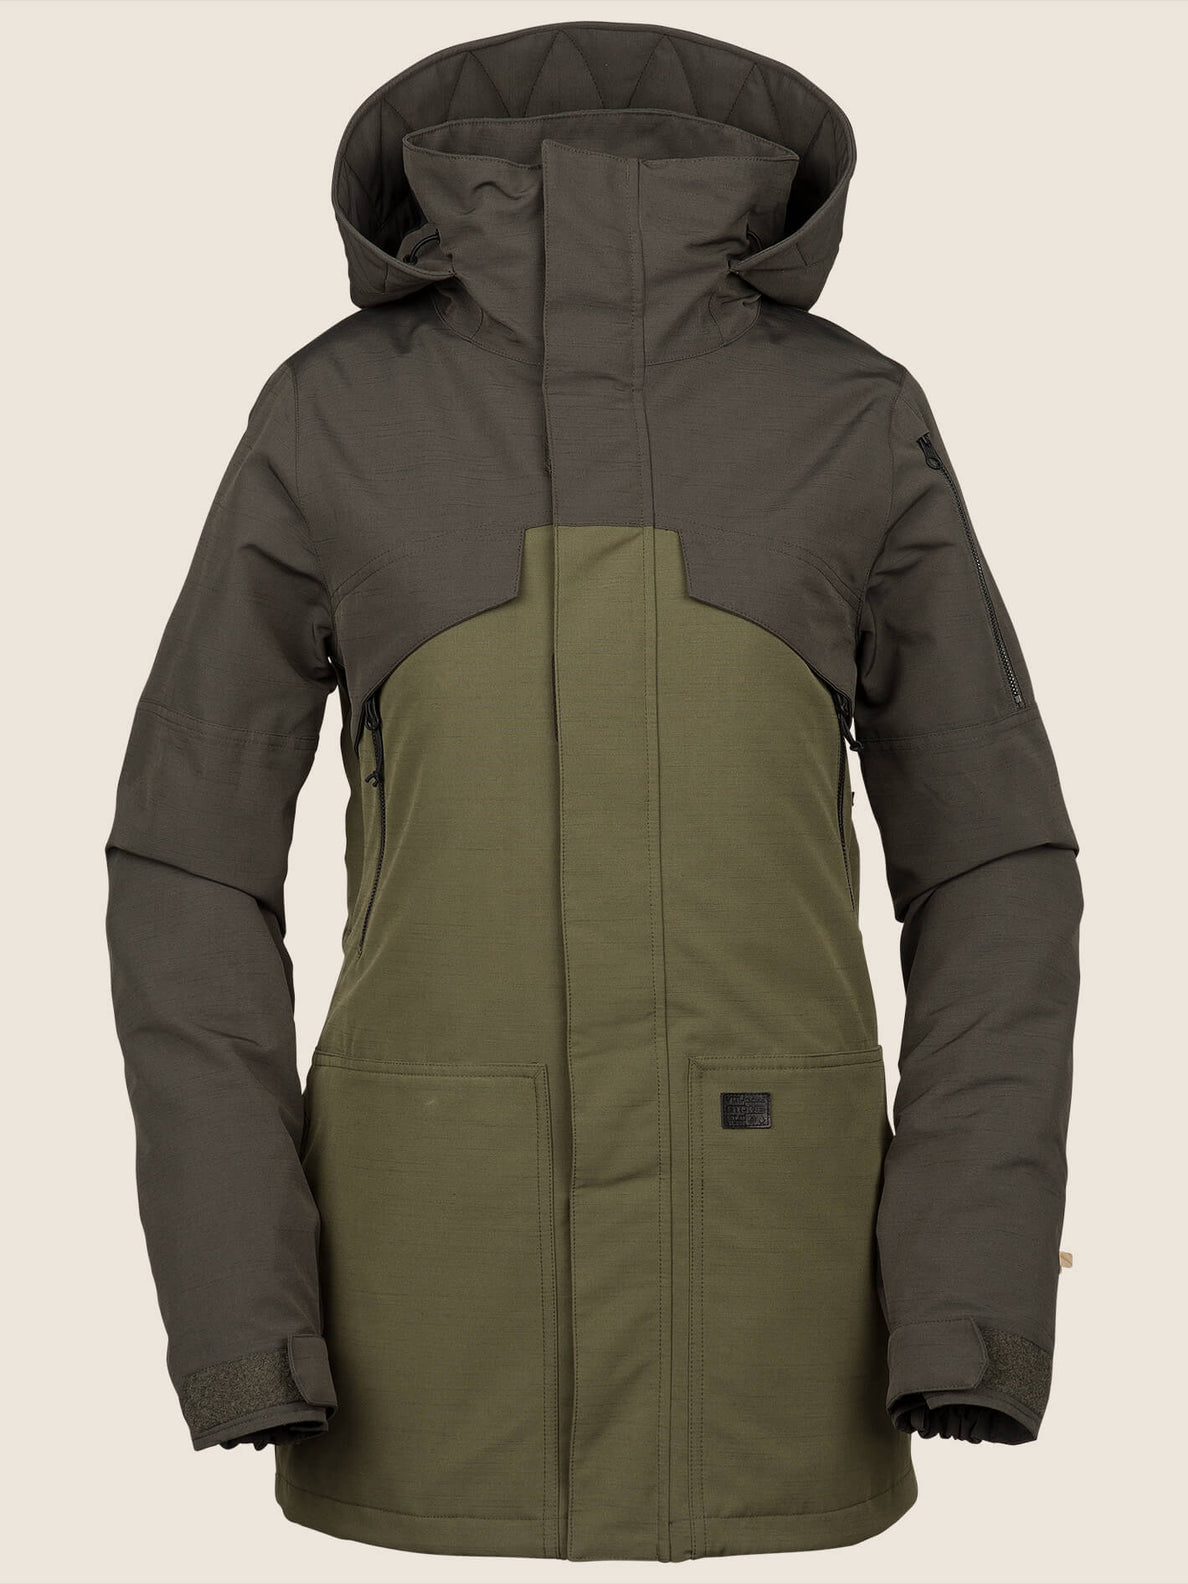 Vault 3-In-1 Jacket In Snow Military, Front View